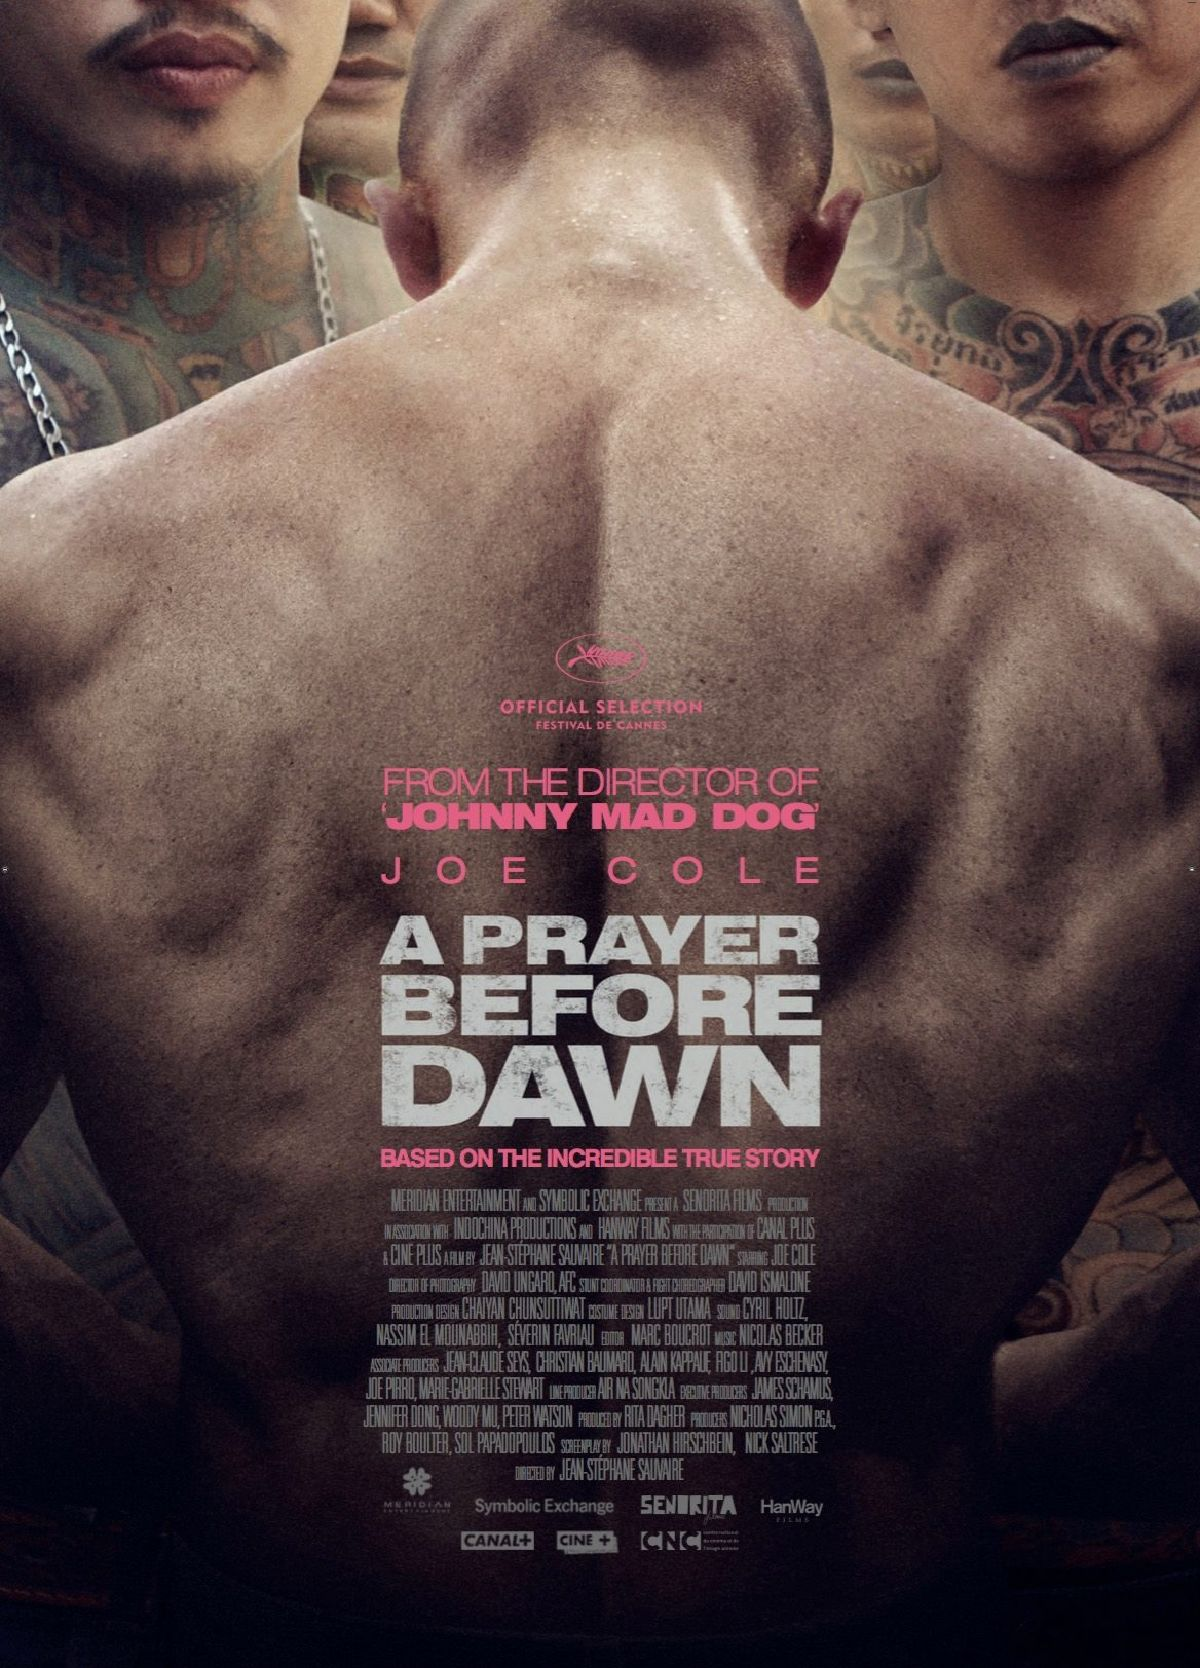 'A Prayer Before Dawn' movie poster